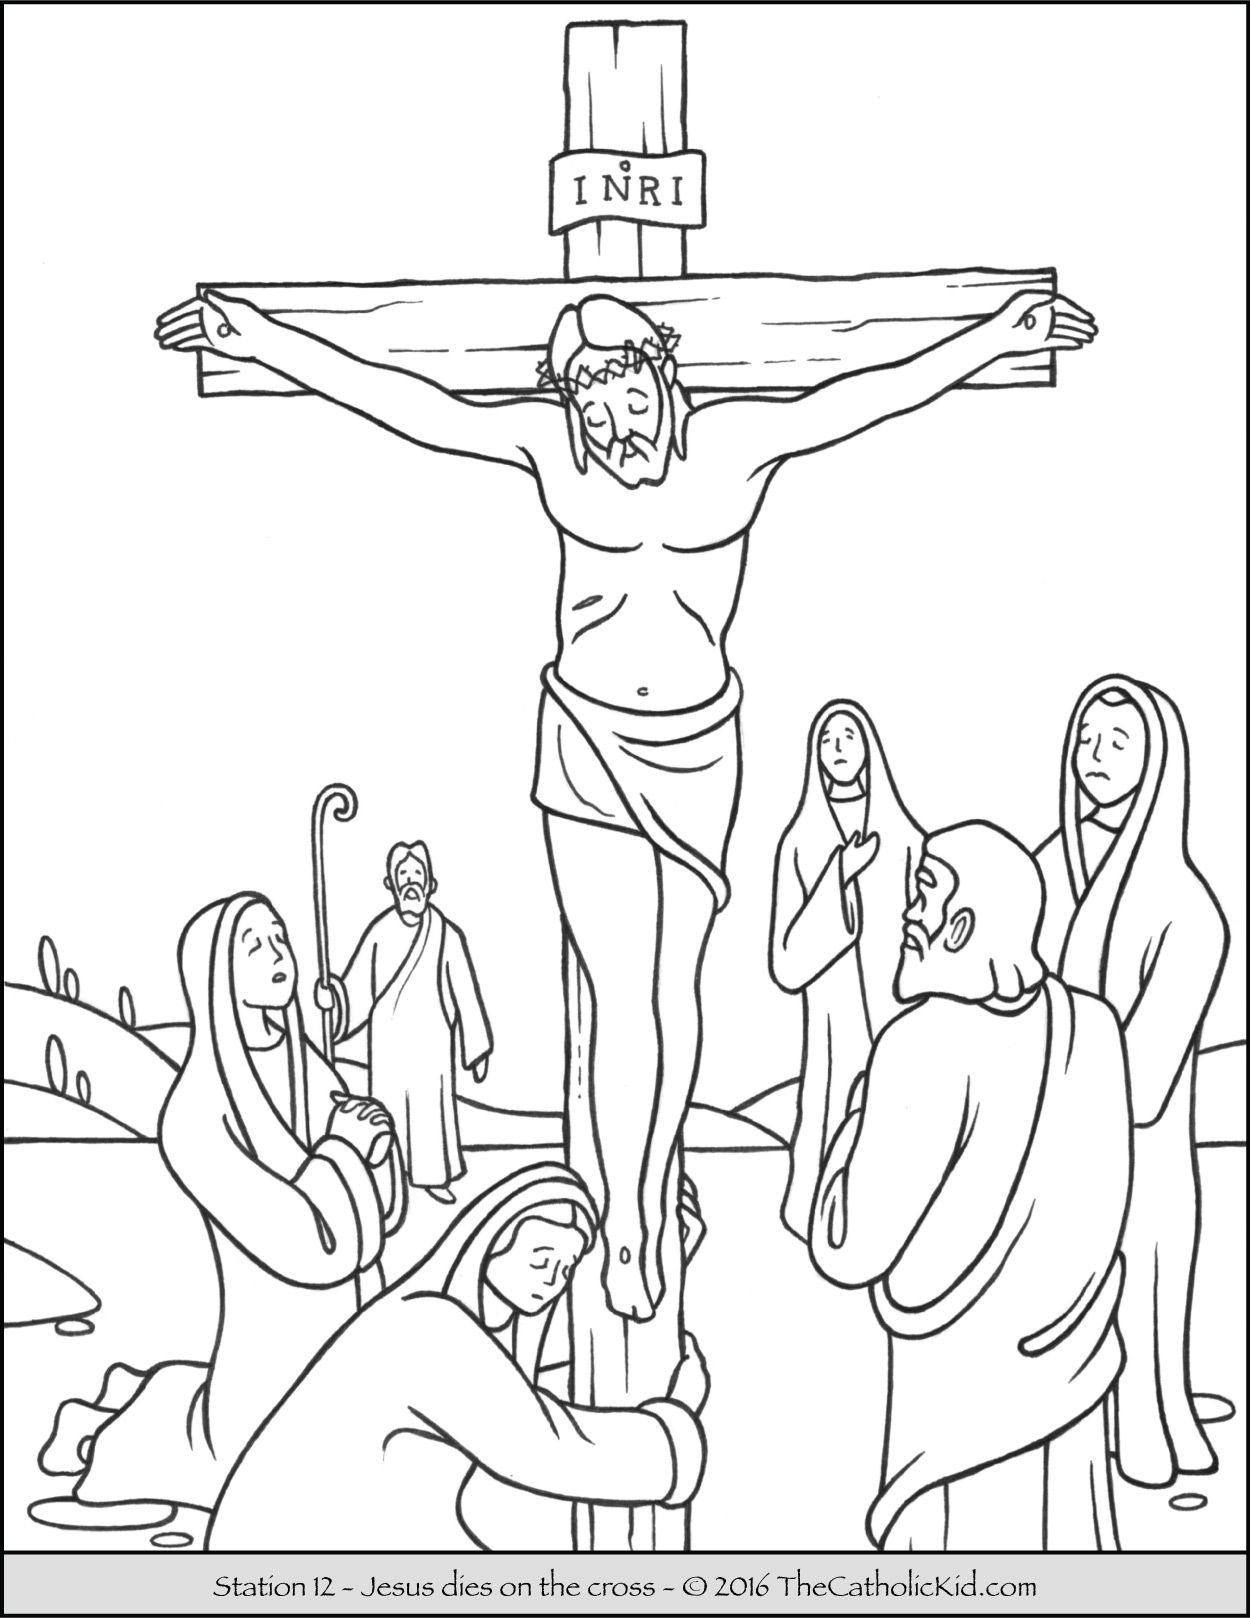 Stations Of The Cross Coloring Pages 12 - Jesus Dies On The